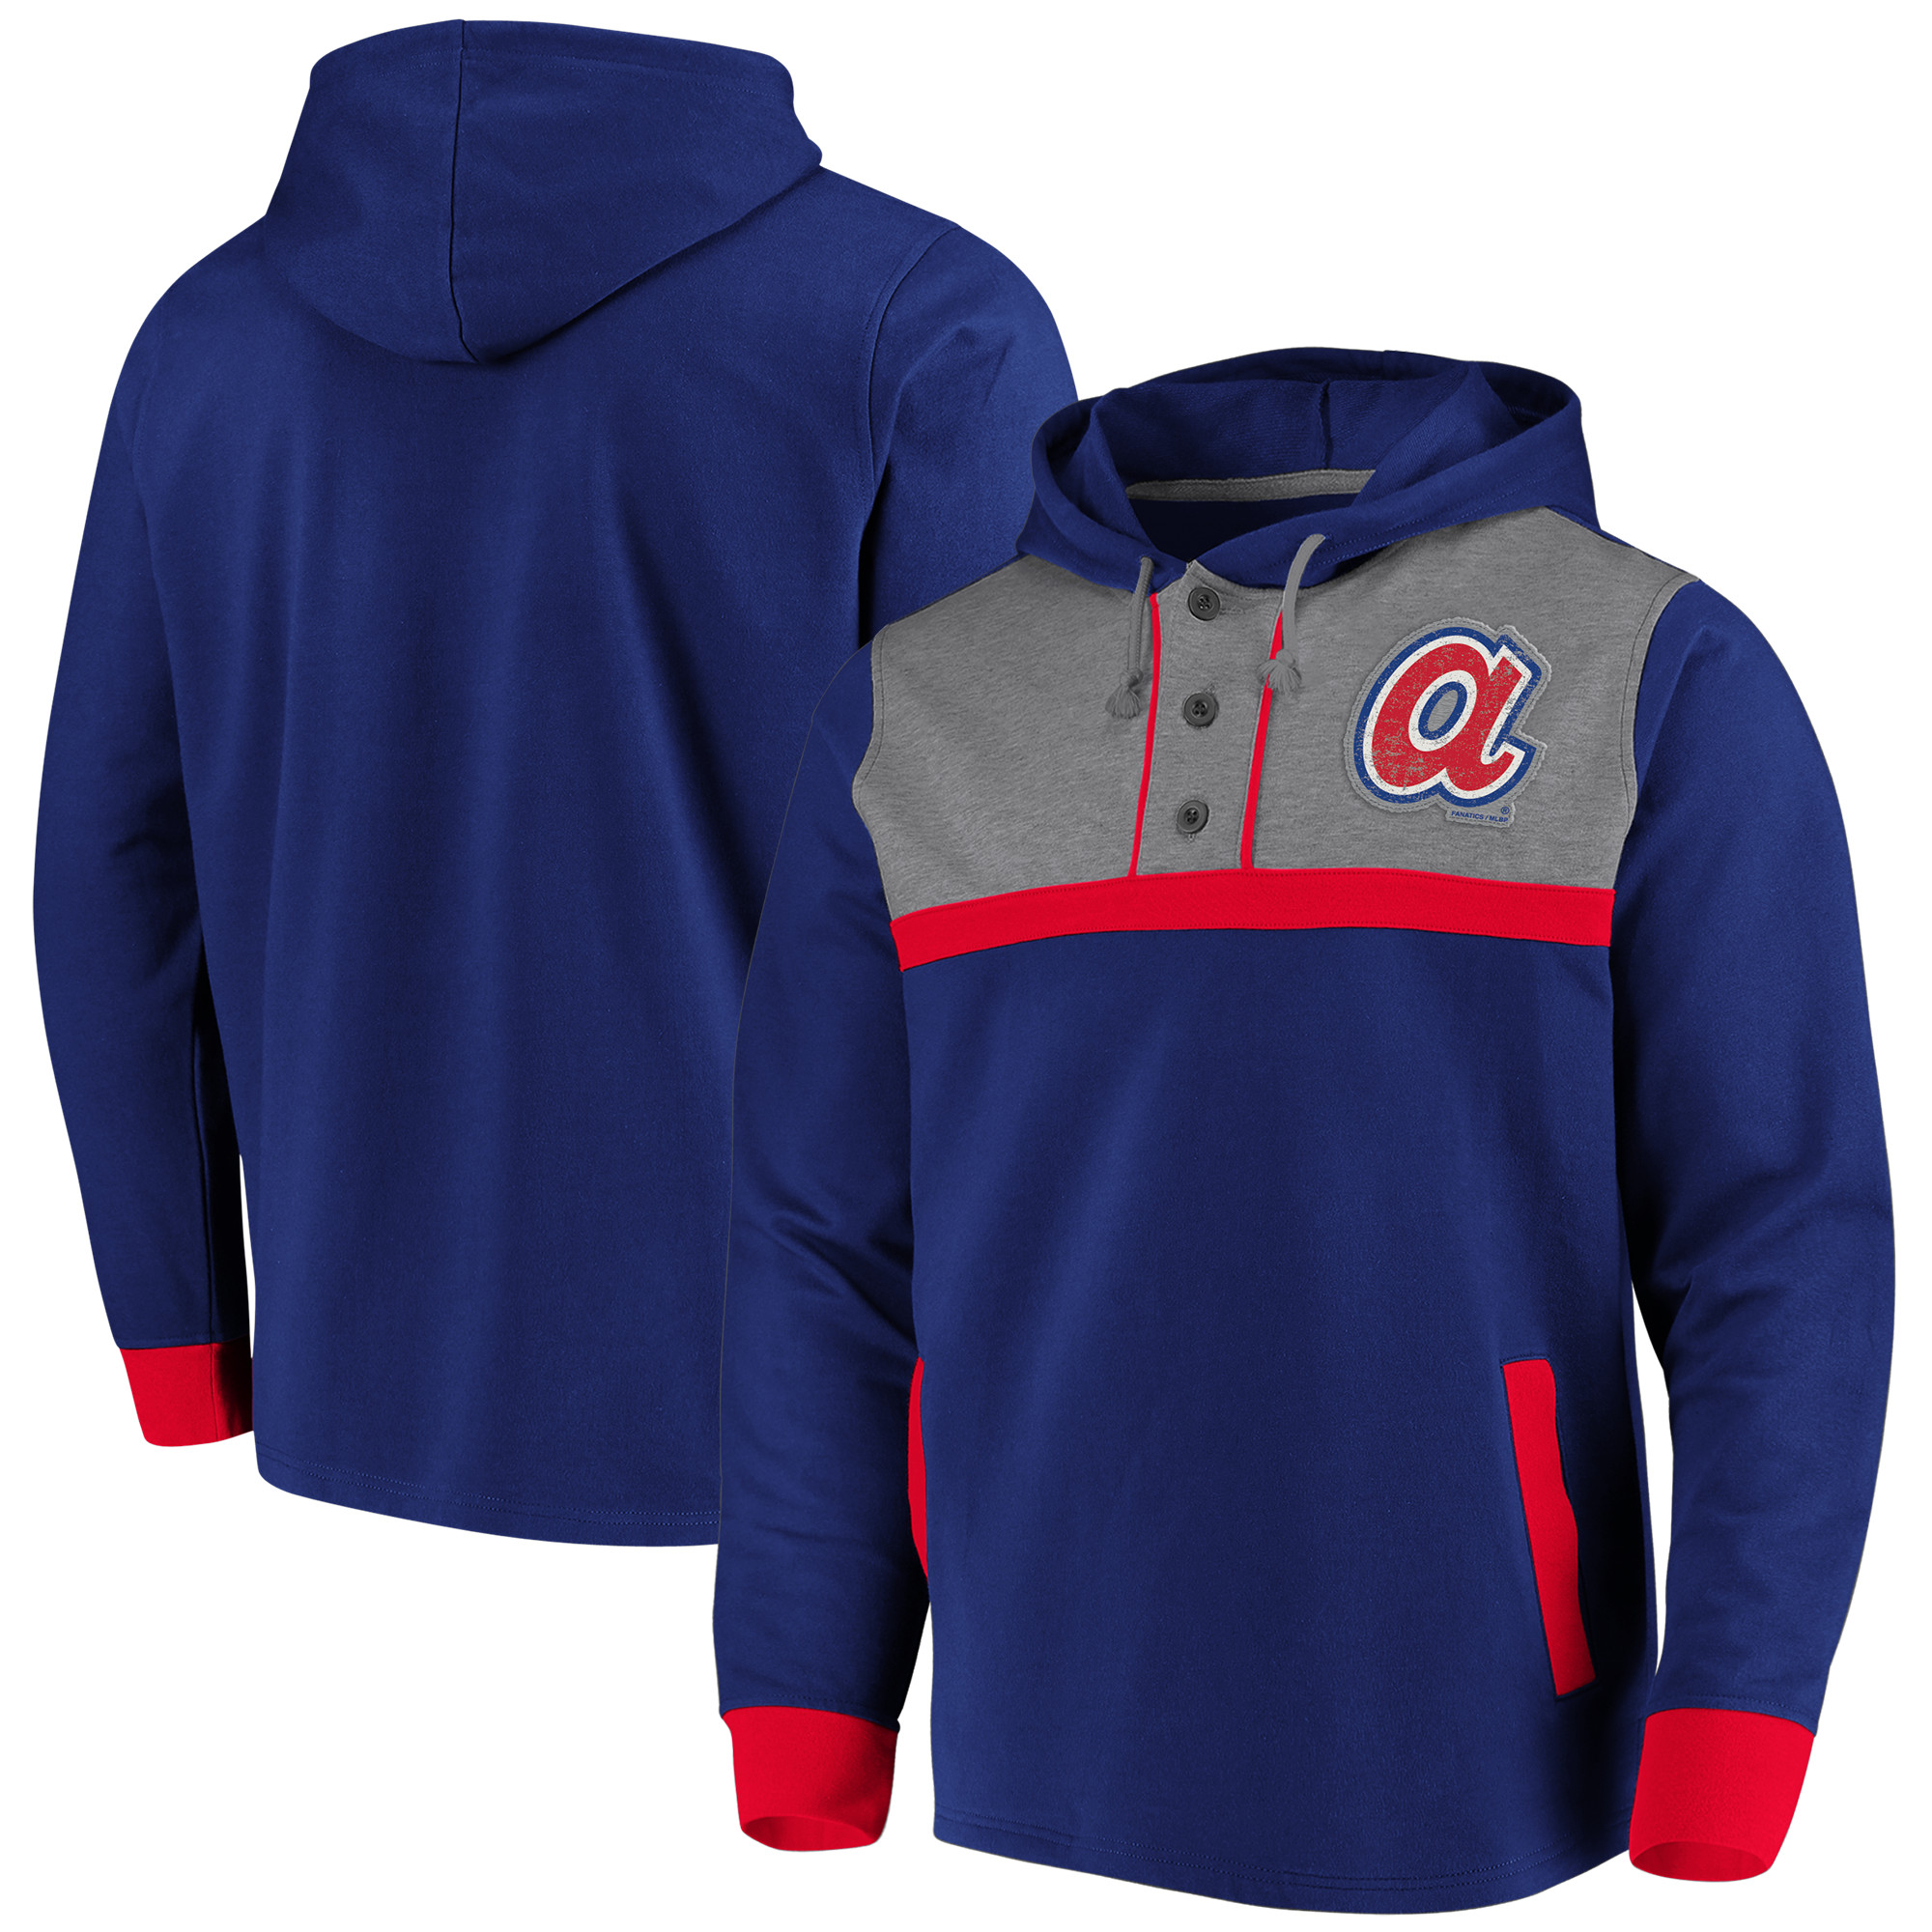 Atlanta Braves Fanatics Branded True Classics Button-Up Henley Pullover Hoodie - Navy/Heathered Gray